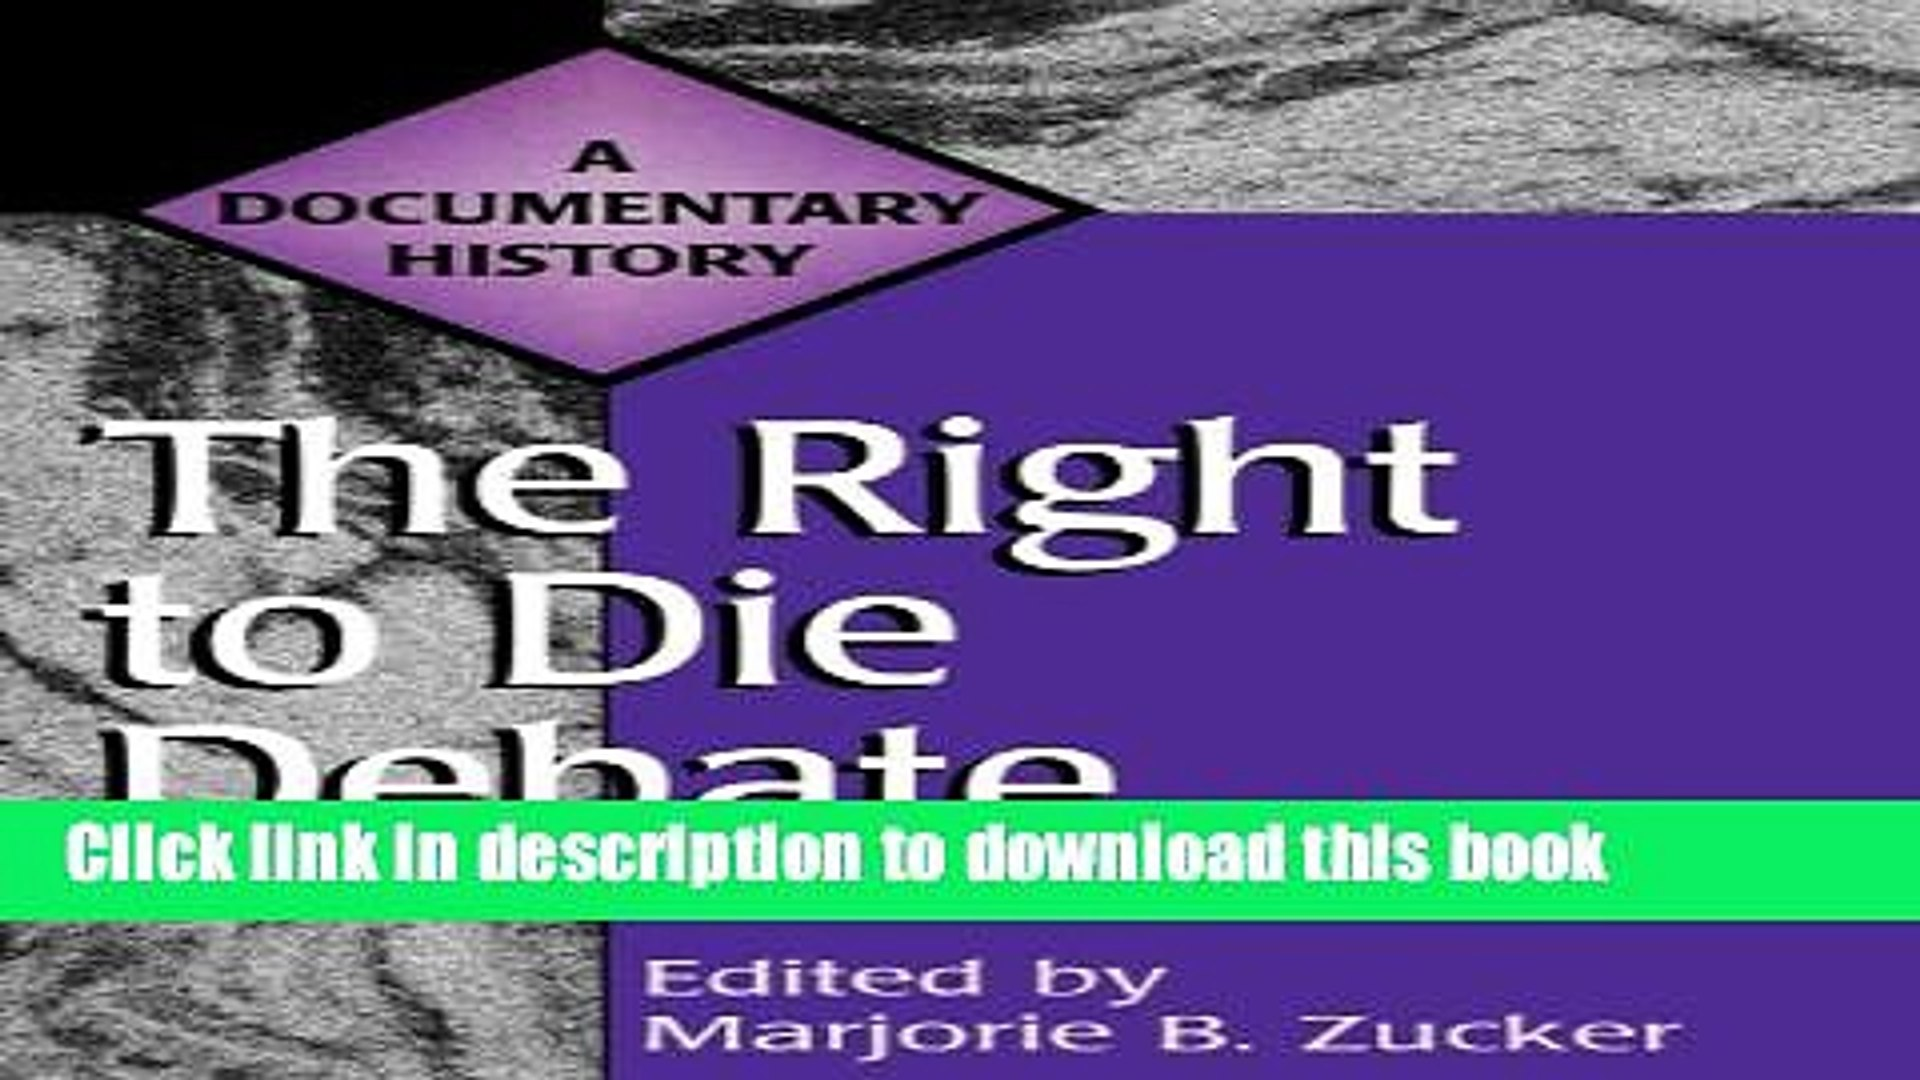 Ebook The Right to Die Debate: A Documentary History (Primary Documents in American History and